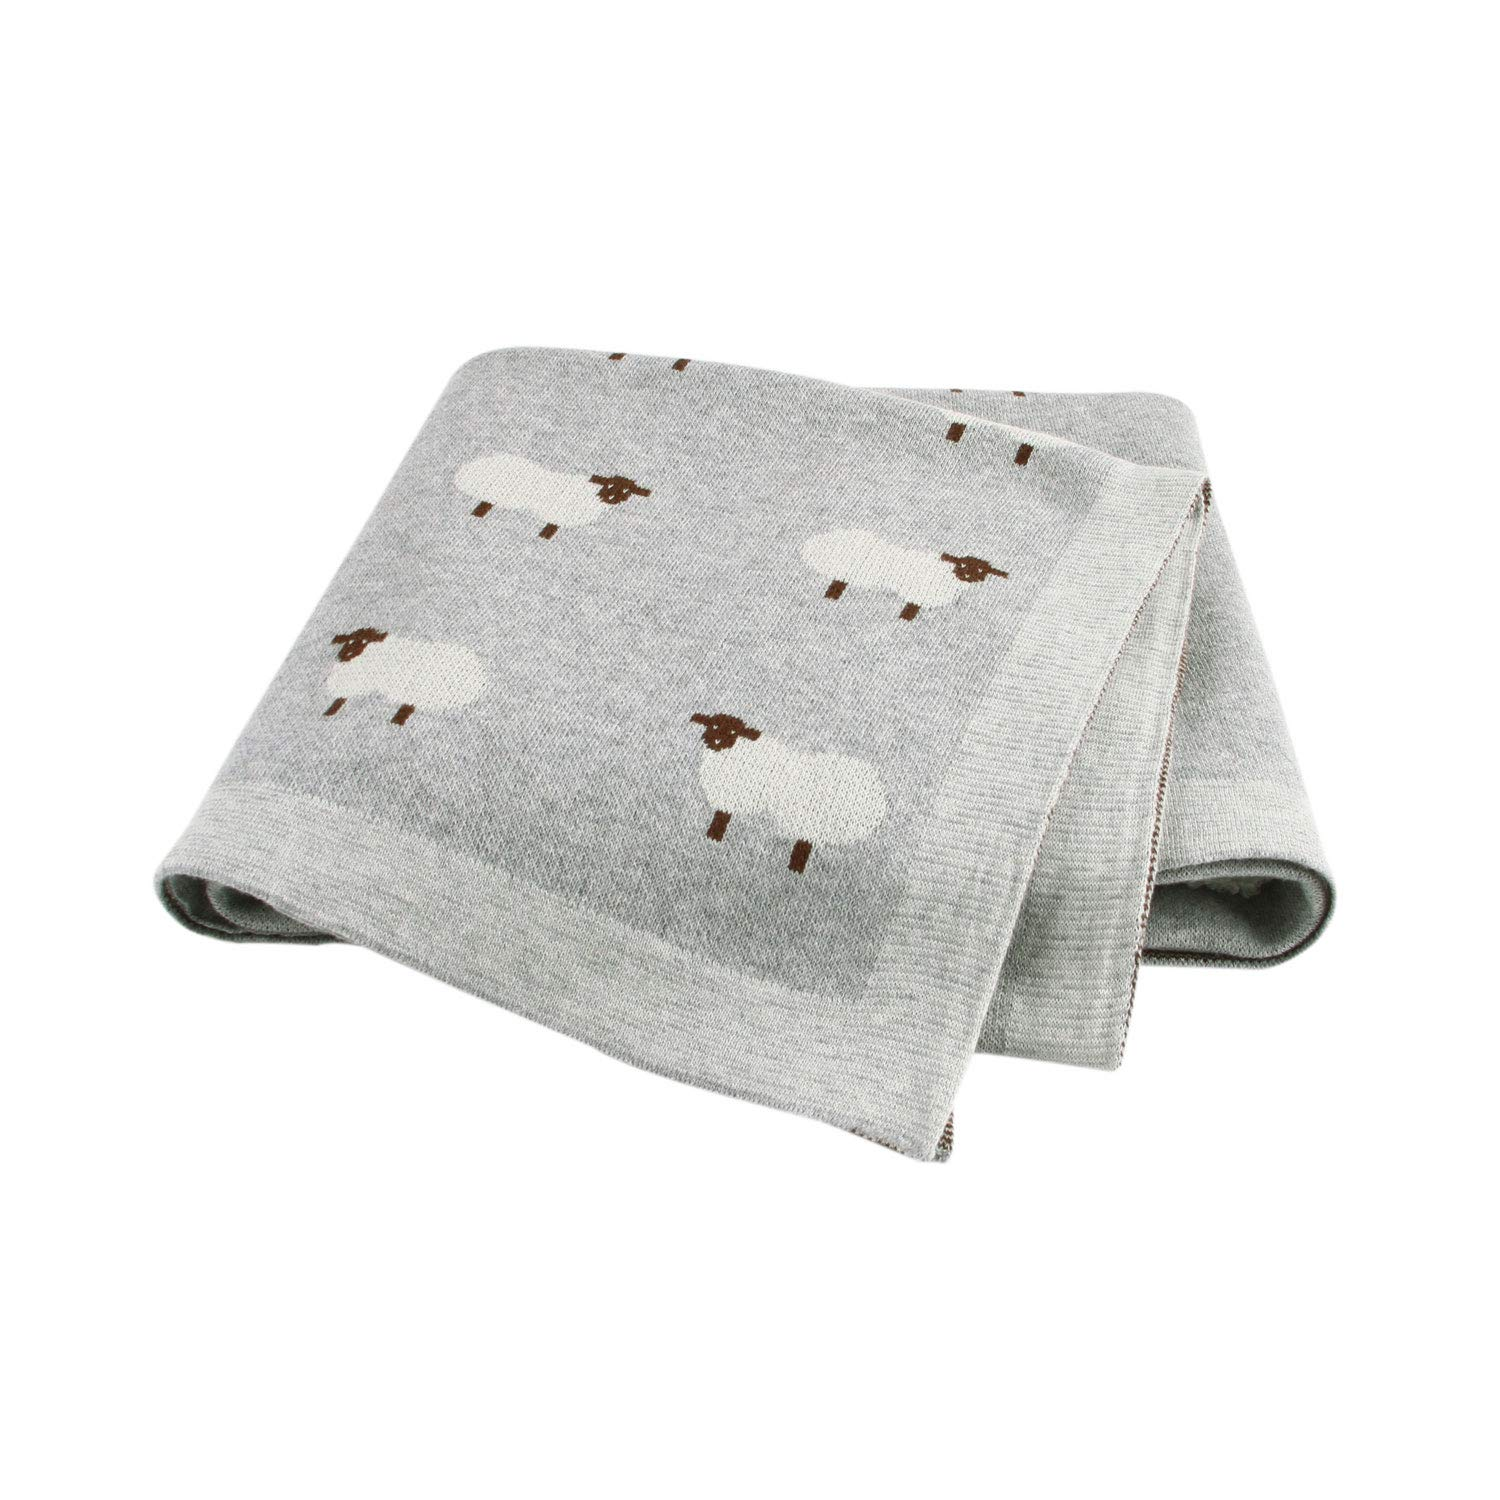 mimixiong Baby Blanket Knit 100% Cotton Toddler Blankets for Boys and Girls Swaddle Stroller with Cute Sheep Grey Size 30 x 40 inches